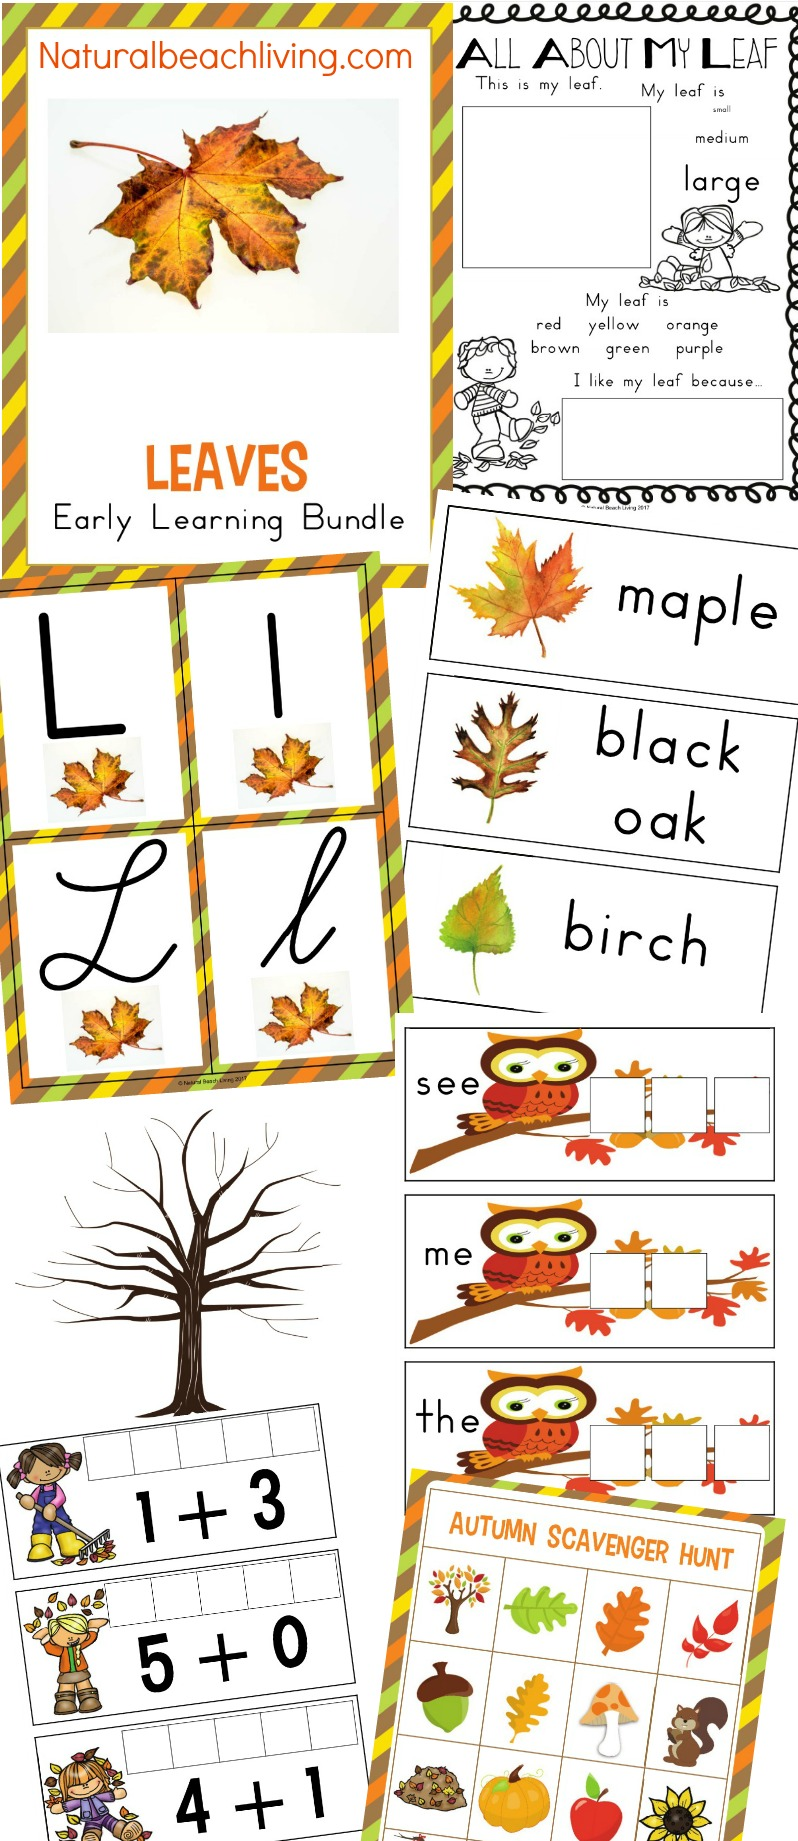 Fall Sensory Bin for Toddlers and Preschoolers, A Fall Sensory Bin is the perfect way for children to explore the fall season. Sensory activities are full of ways kids can learn about textures, sounds, smells, and colors. Easy fall sensory idea for kids